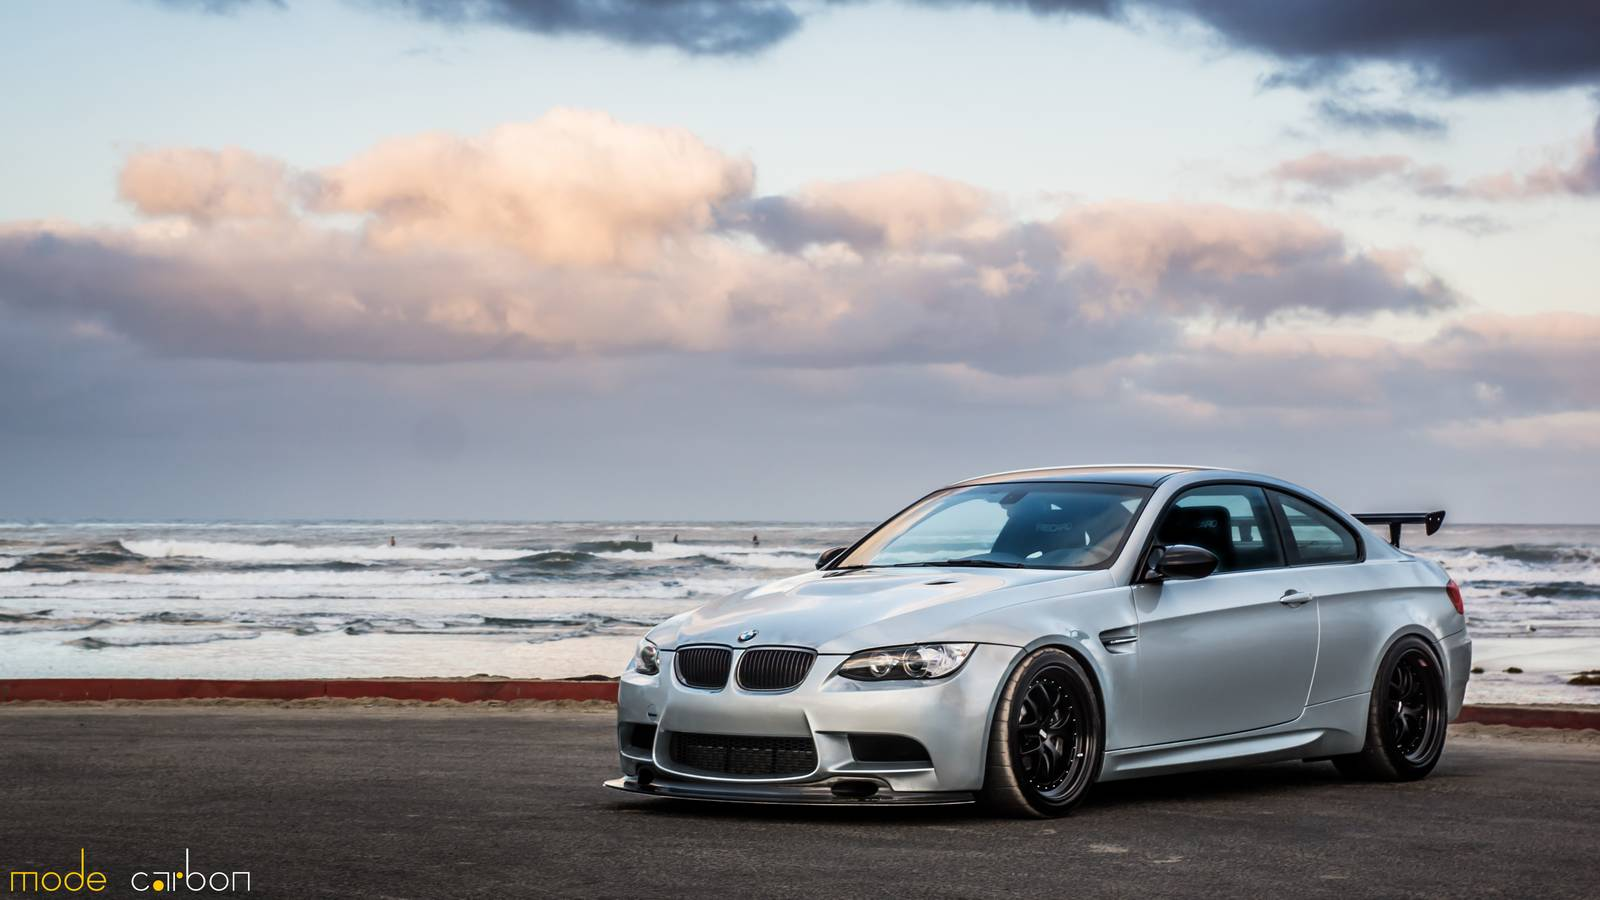 silver stone bmw m3 by mode carbon gtspirit. Black Bedroom Furniture Sets. Home Design Ideas